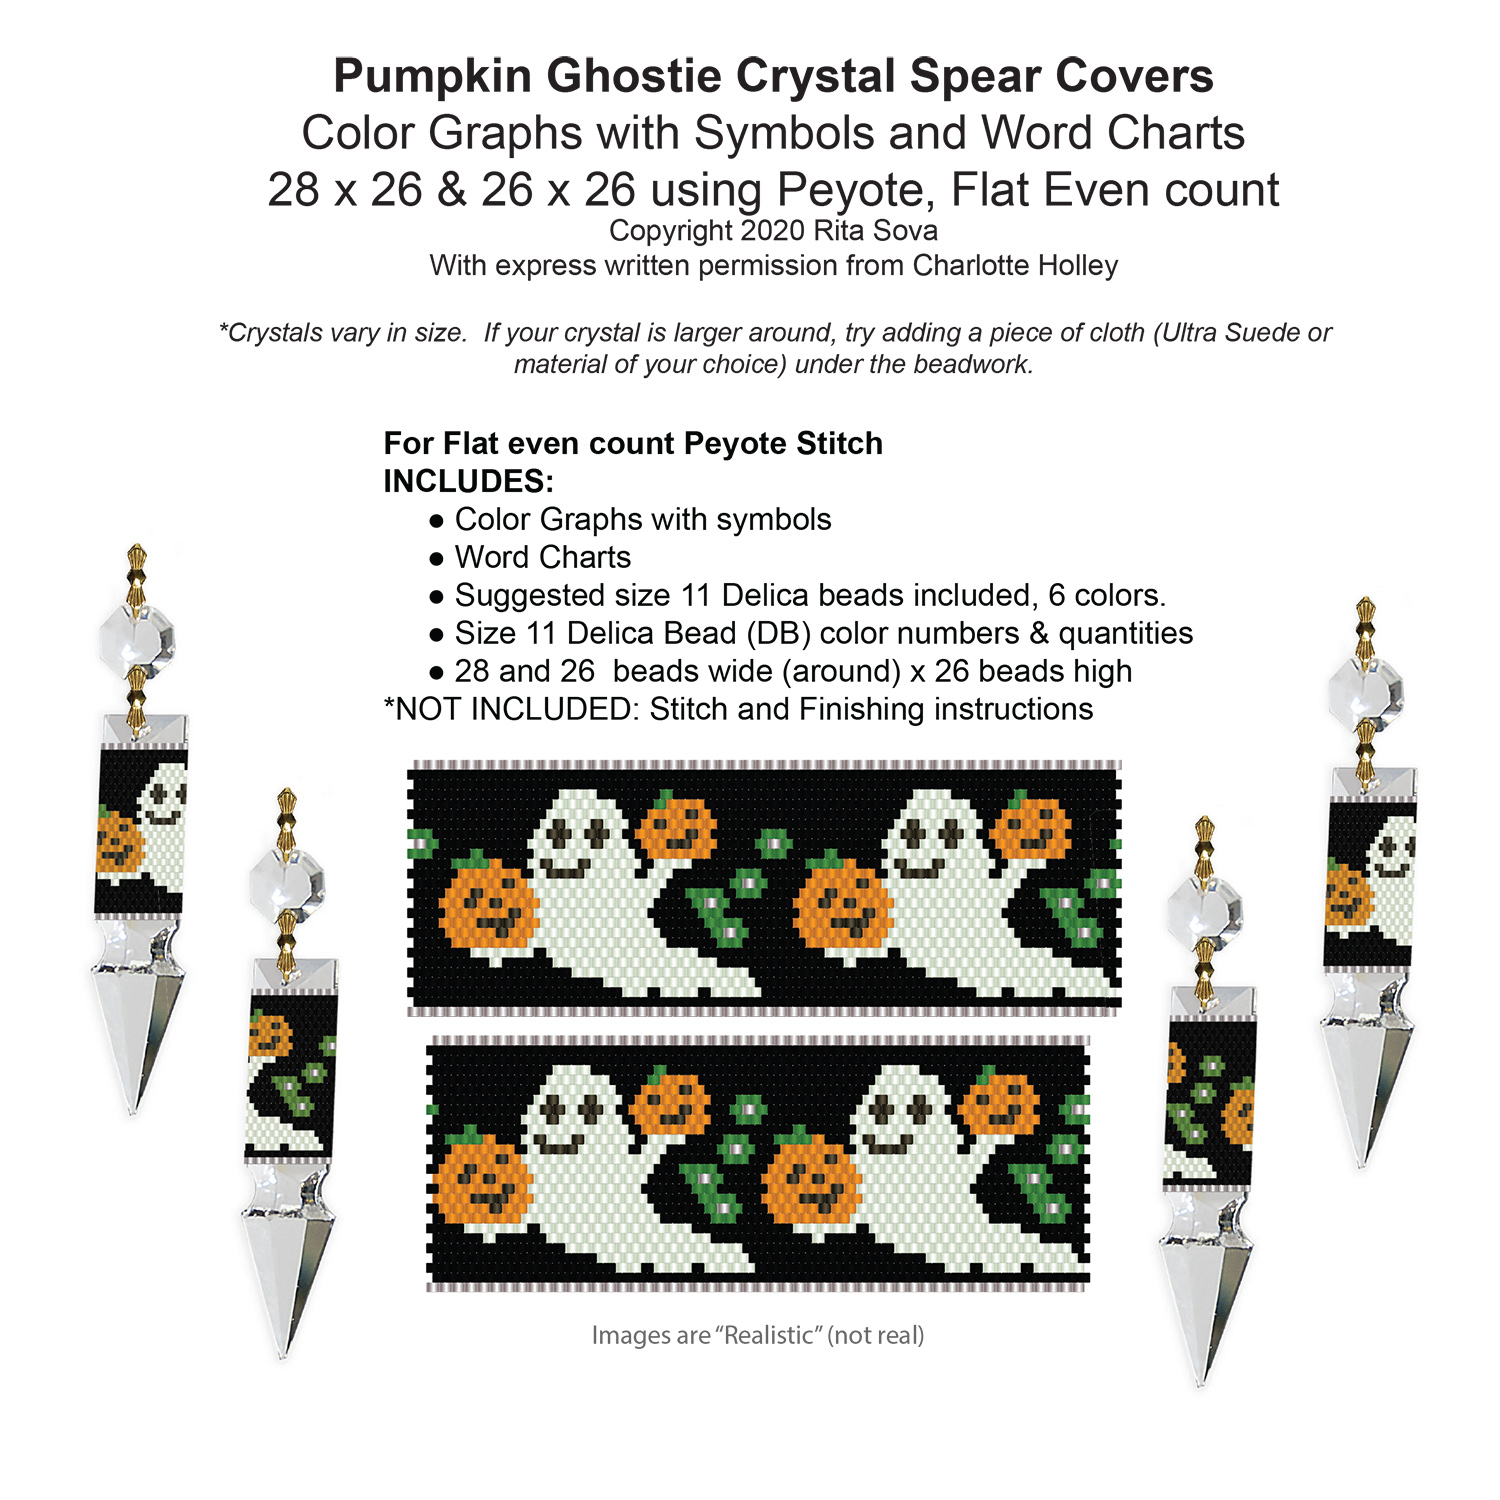 Pumpkin Ghostie Crystal Spear Covers